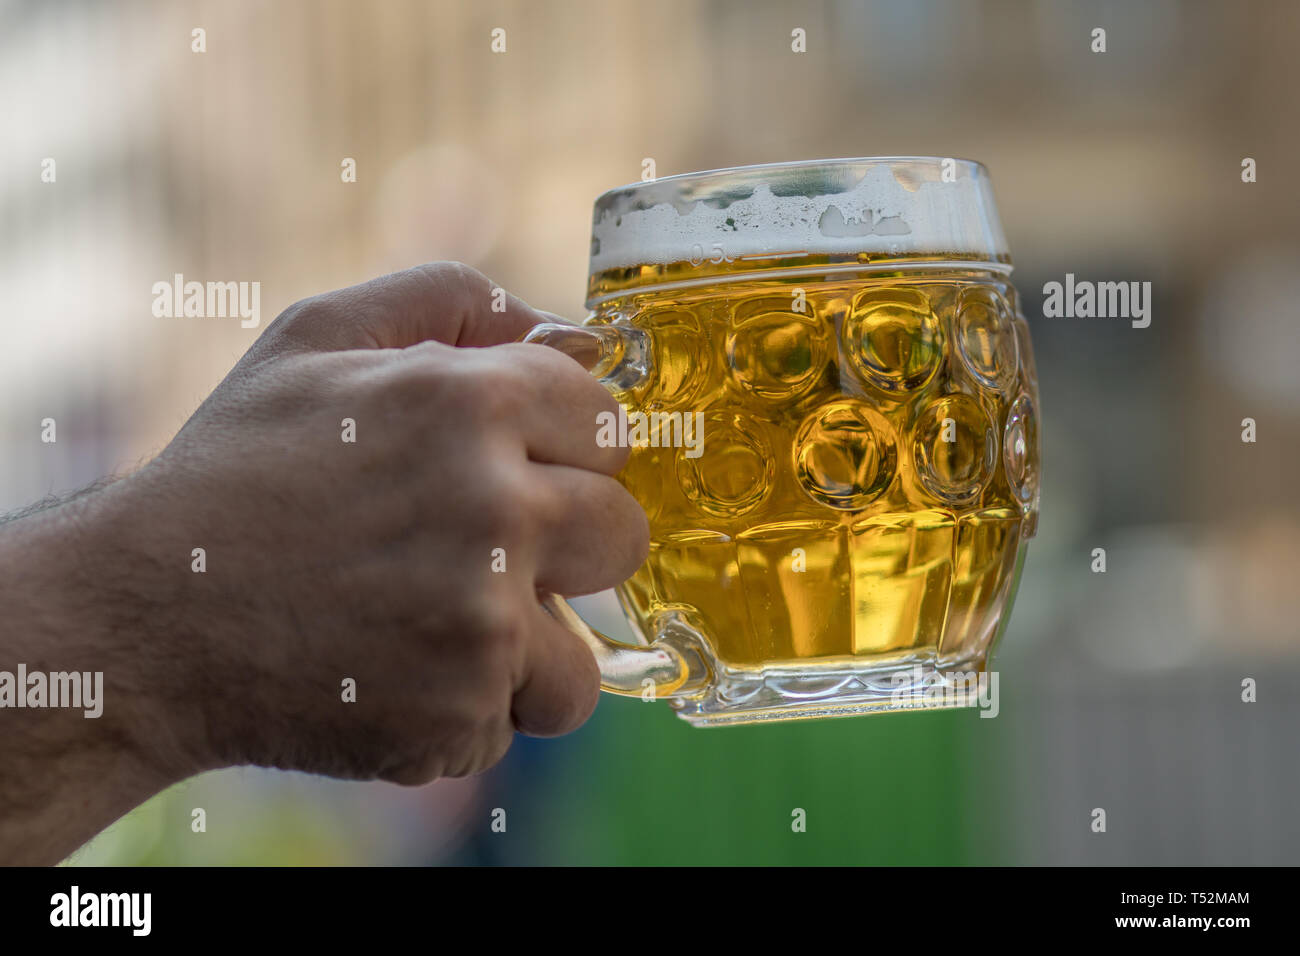 Chilled drink Mug of cold beer. Beer addiction. Alcohol consumption. Harmful addiction. An outstretched hand holds a glass of beer. - Stock Image